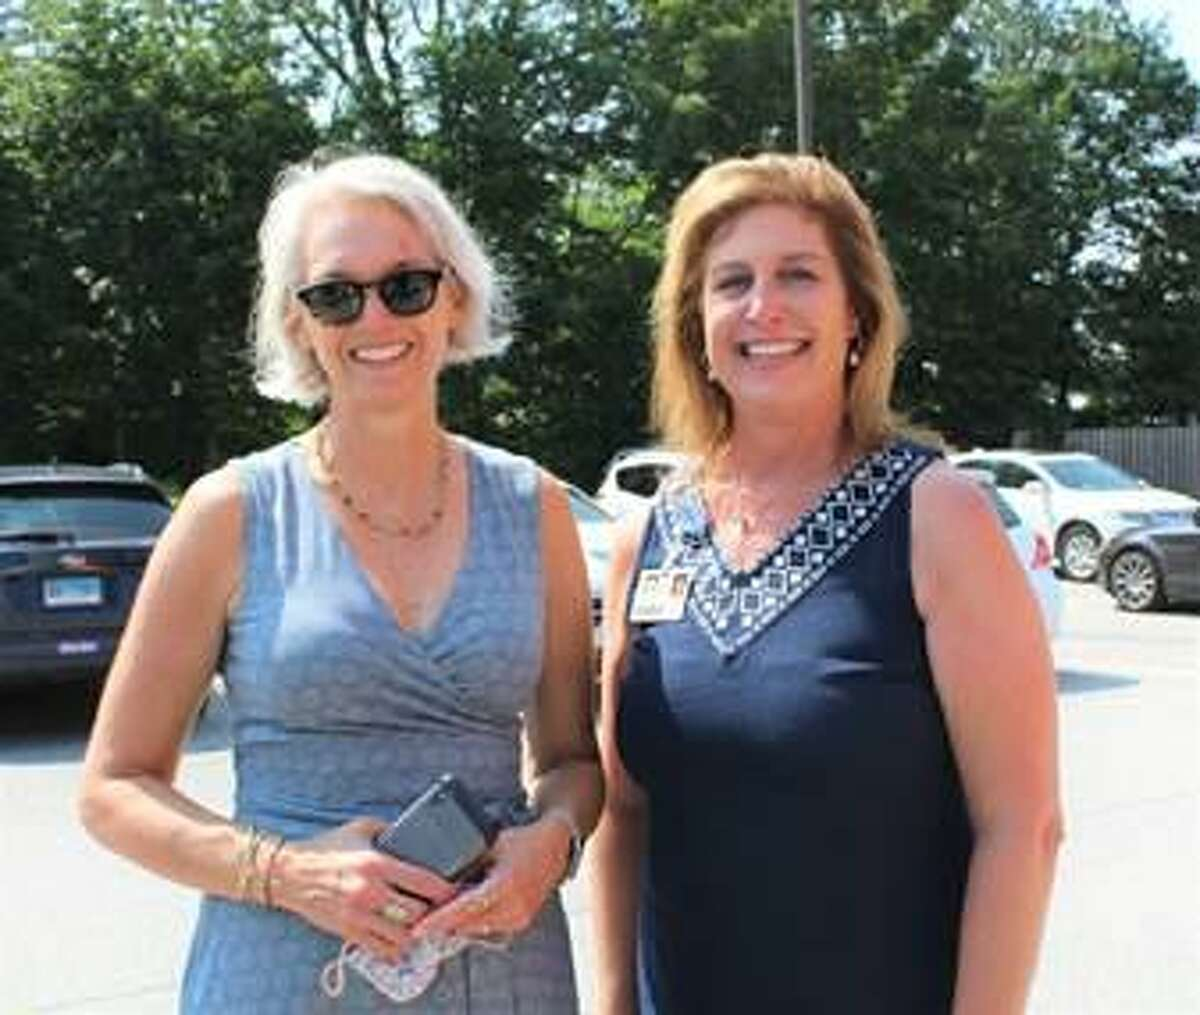 Community Health & Wellness Center in Torrington and Winsted held a community celebration Aug. 11, in recognition of National Health Week. Pictured are state Rep. Maria Horn, D-Salisbury, left, and CHWC CEO Joanne Borduas.